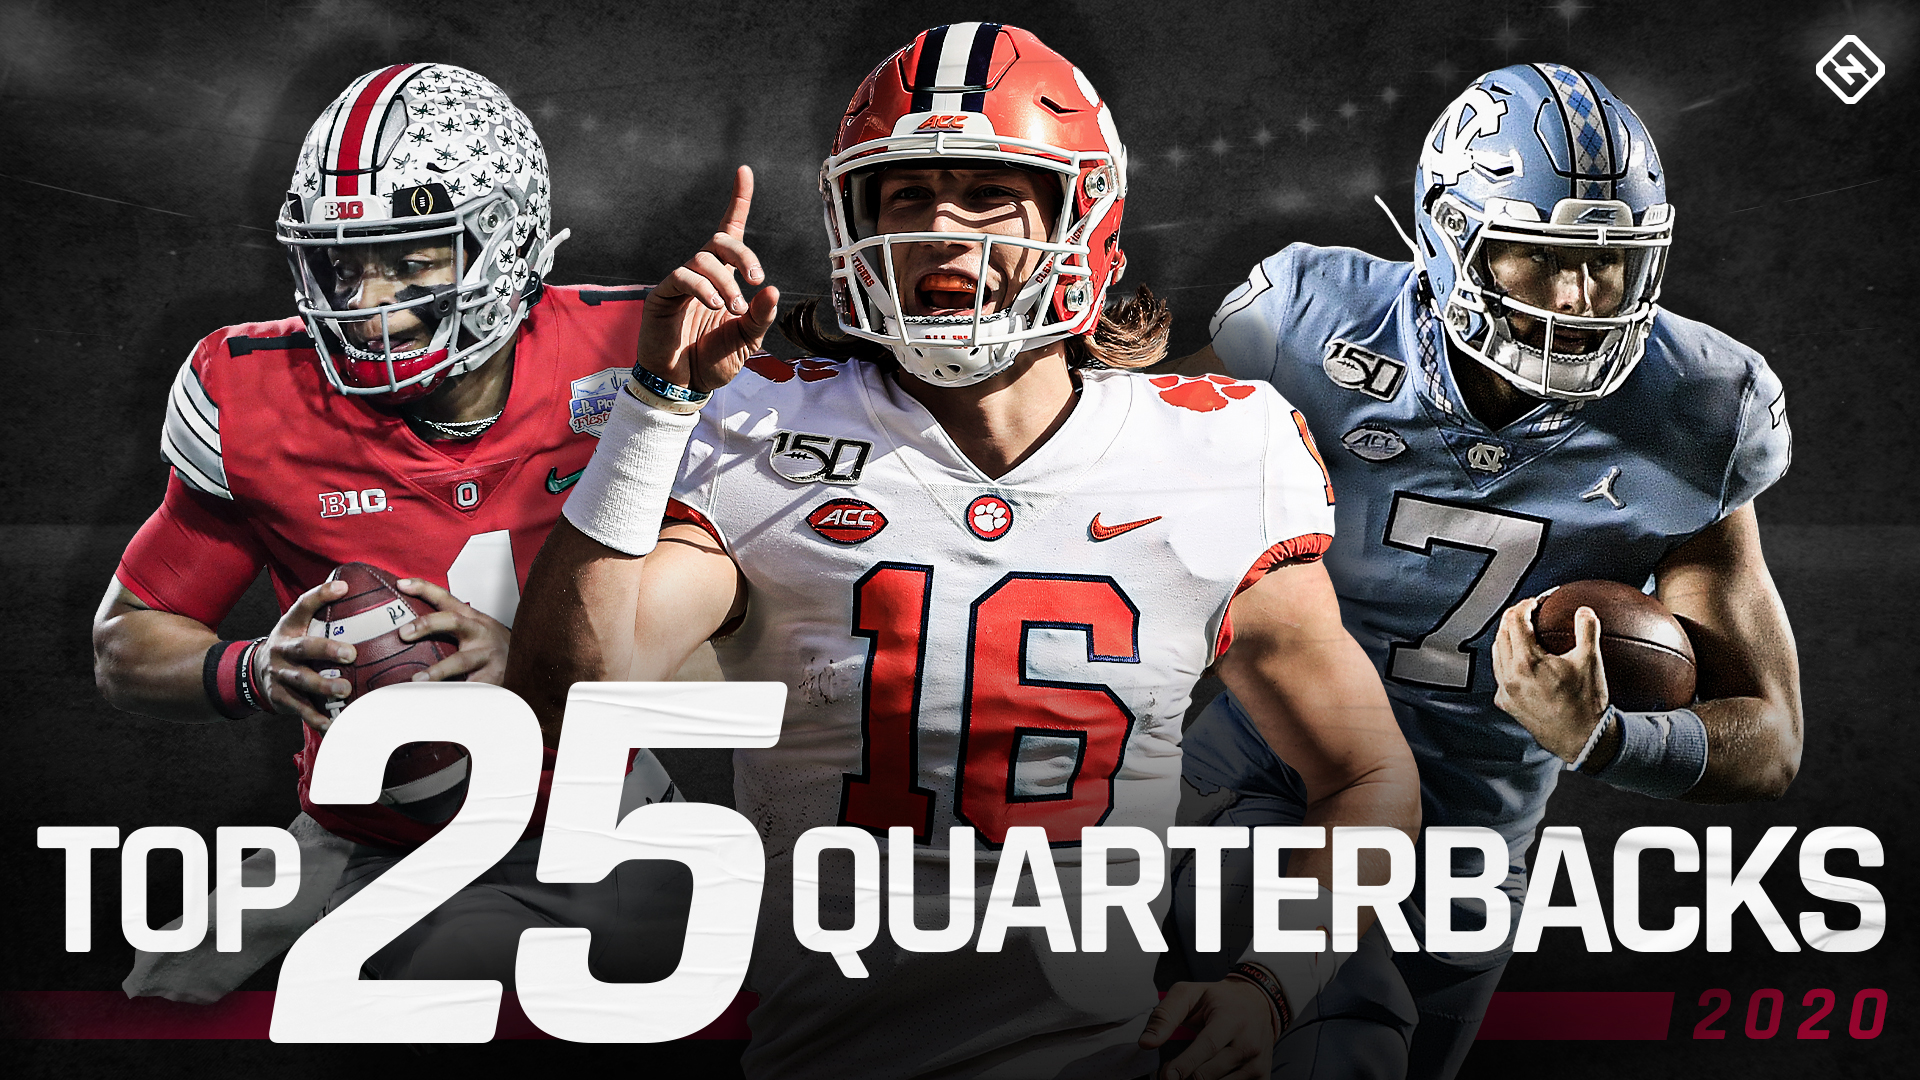 College Football S Top 25 Quarterbacks For 2020 Trevor Lawrence Justin Fields Fight For Top Spot Sporting News